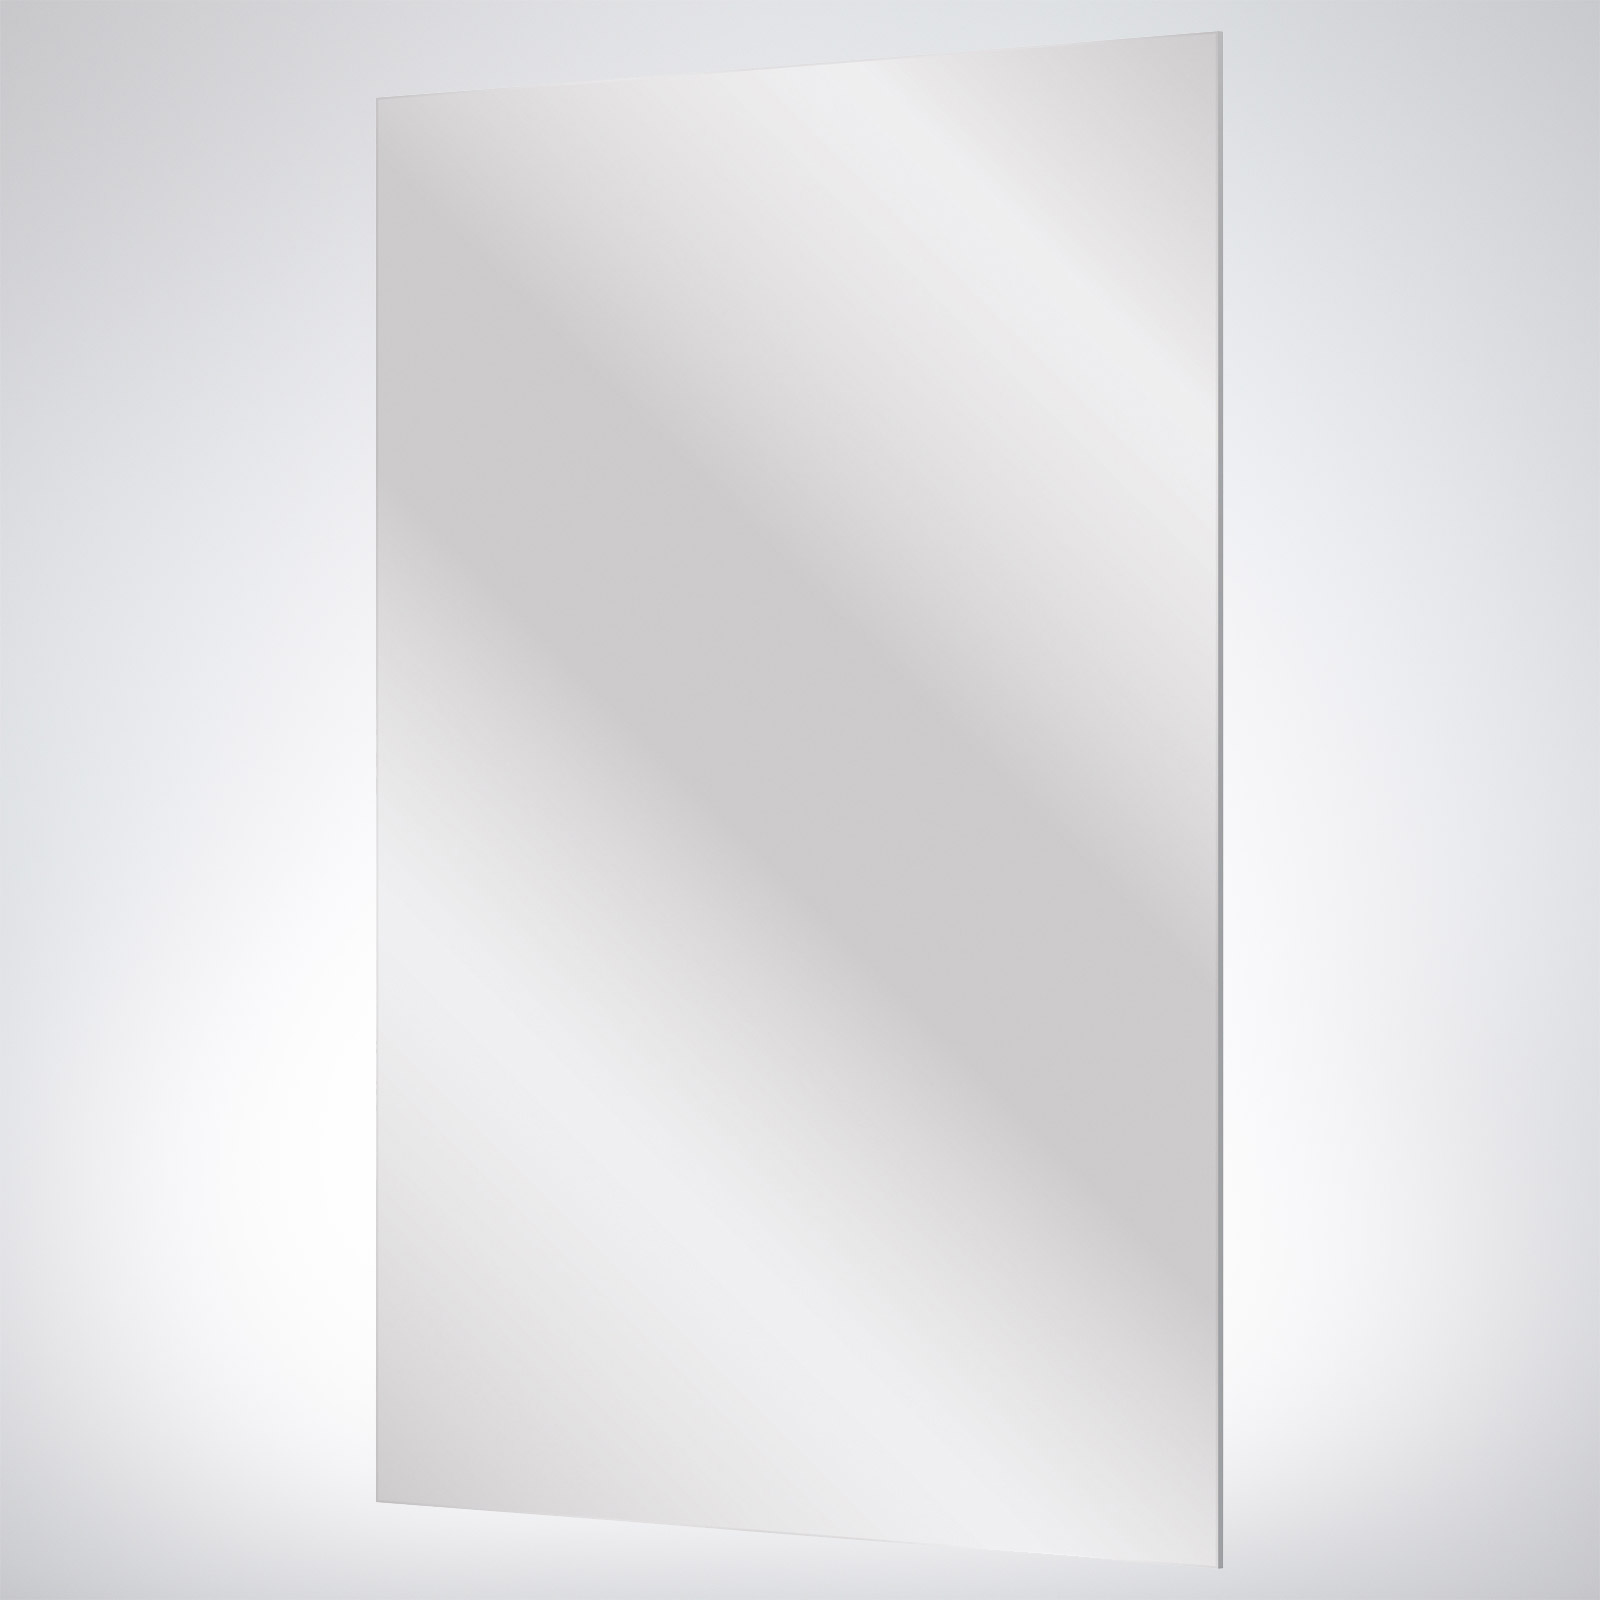 Flat Edge Mirror – 1500 x 900 x 5mm